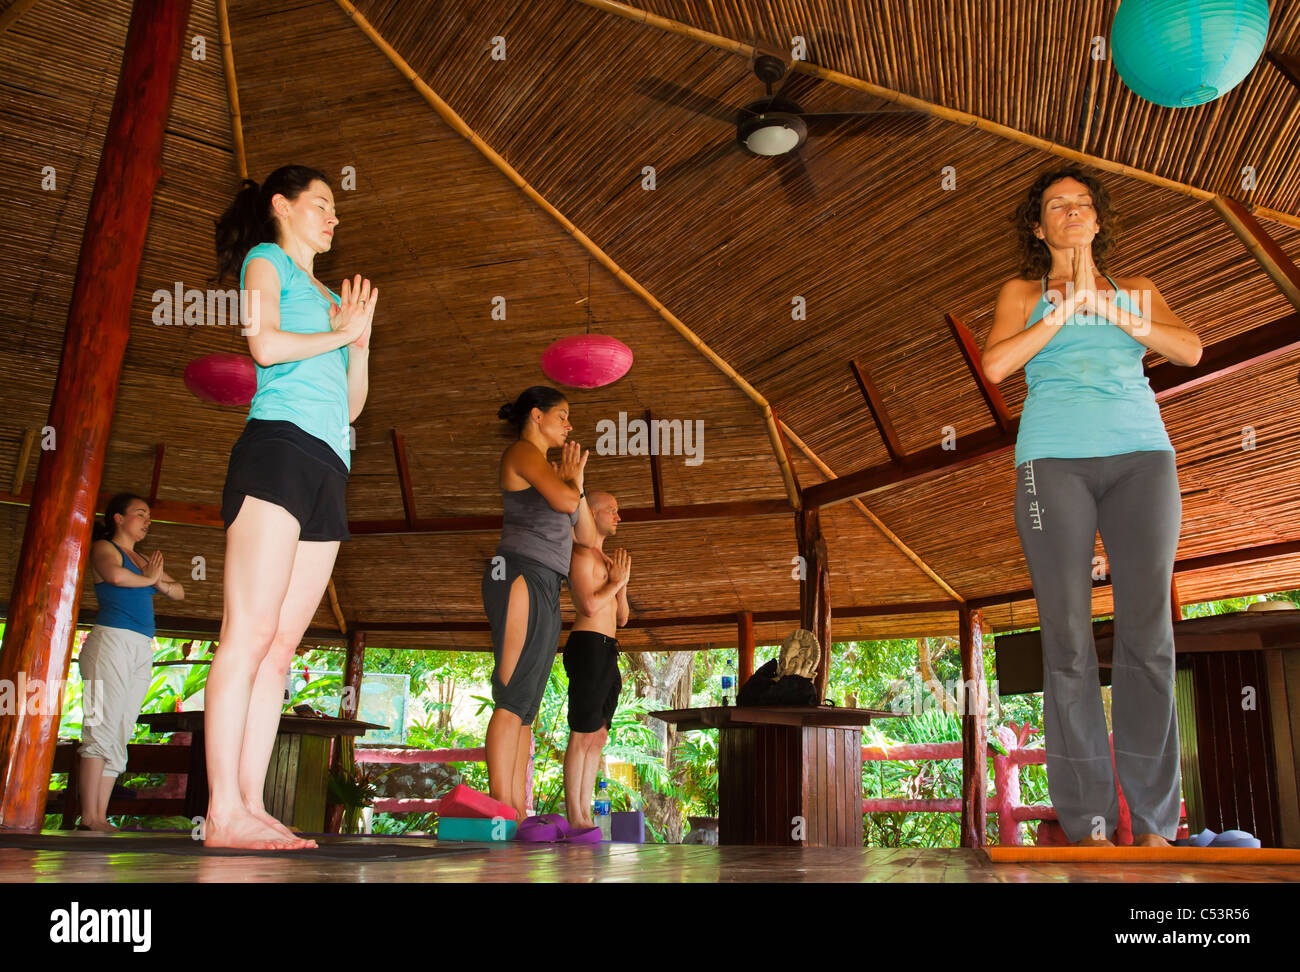 Yoga class at Montezuma Yoga School Los Mangos hotel - Stock Image